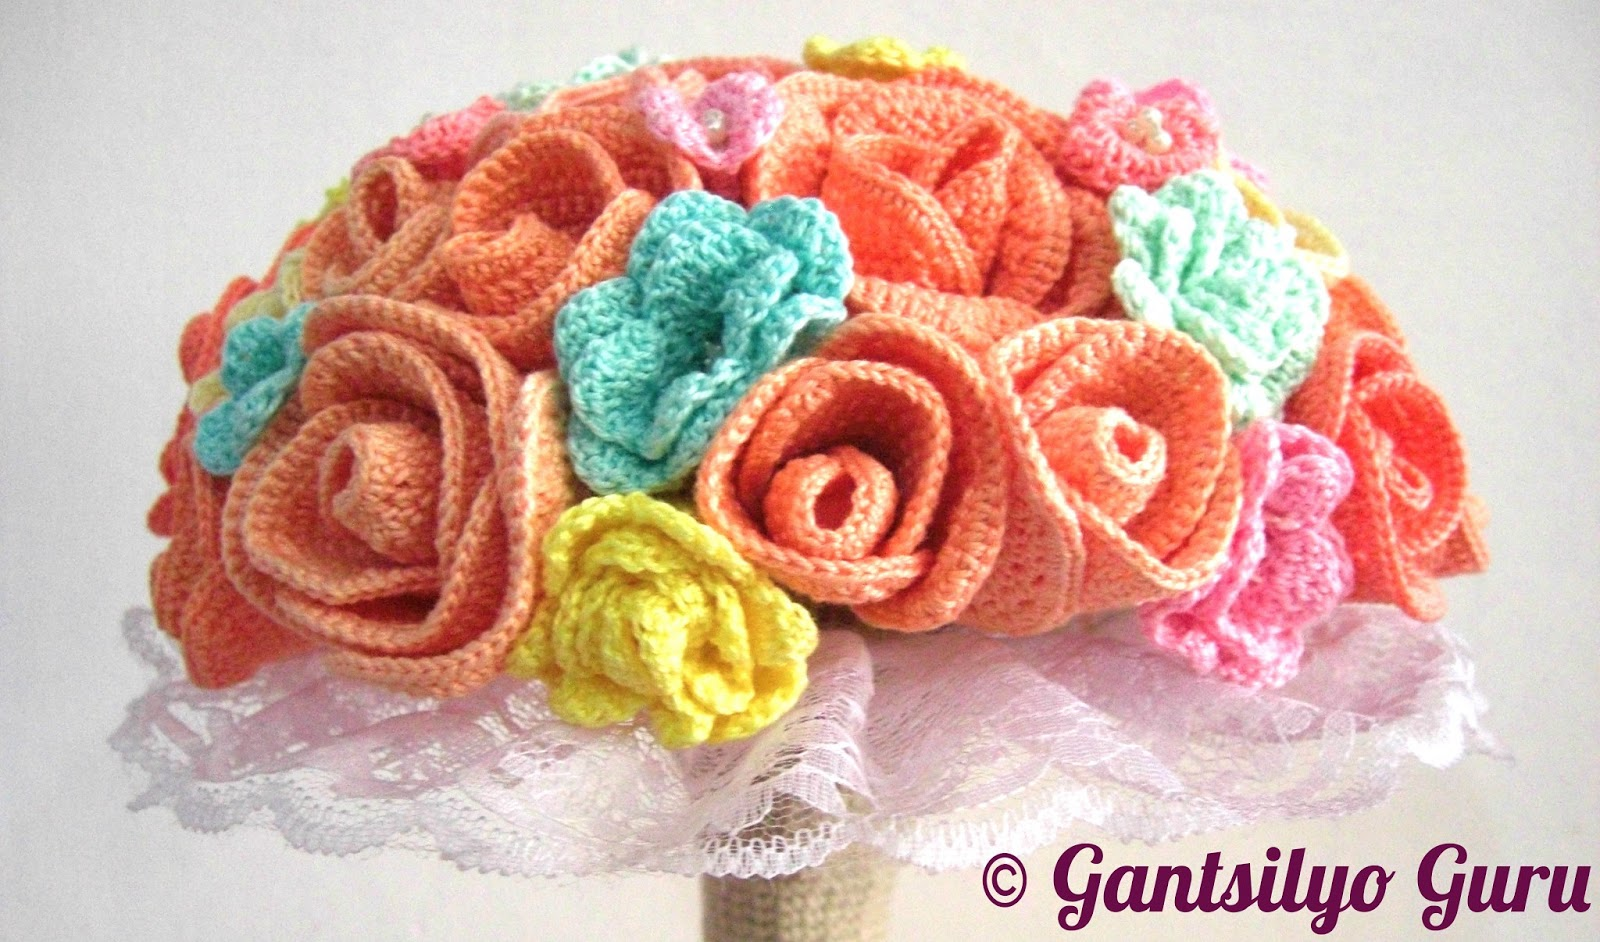 Gantsilyo Guru: Crocheted Bouquet Is Here!!!